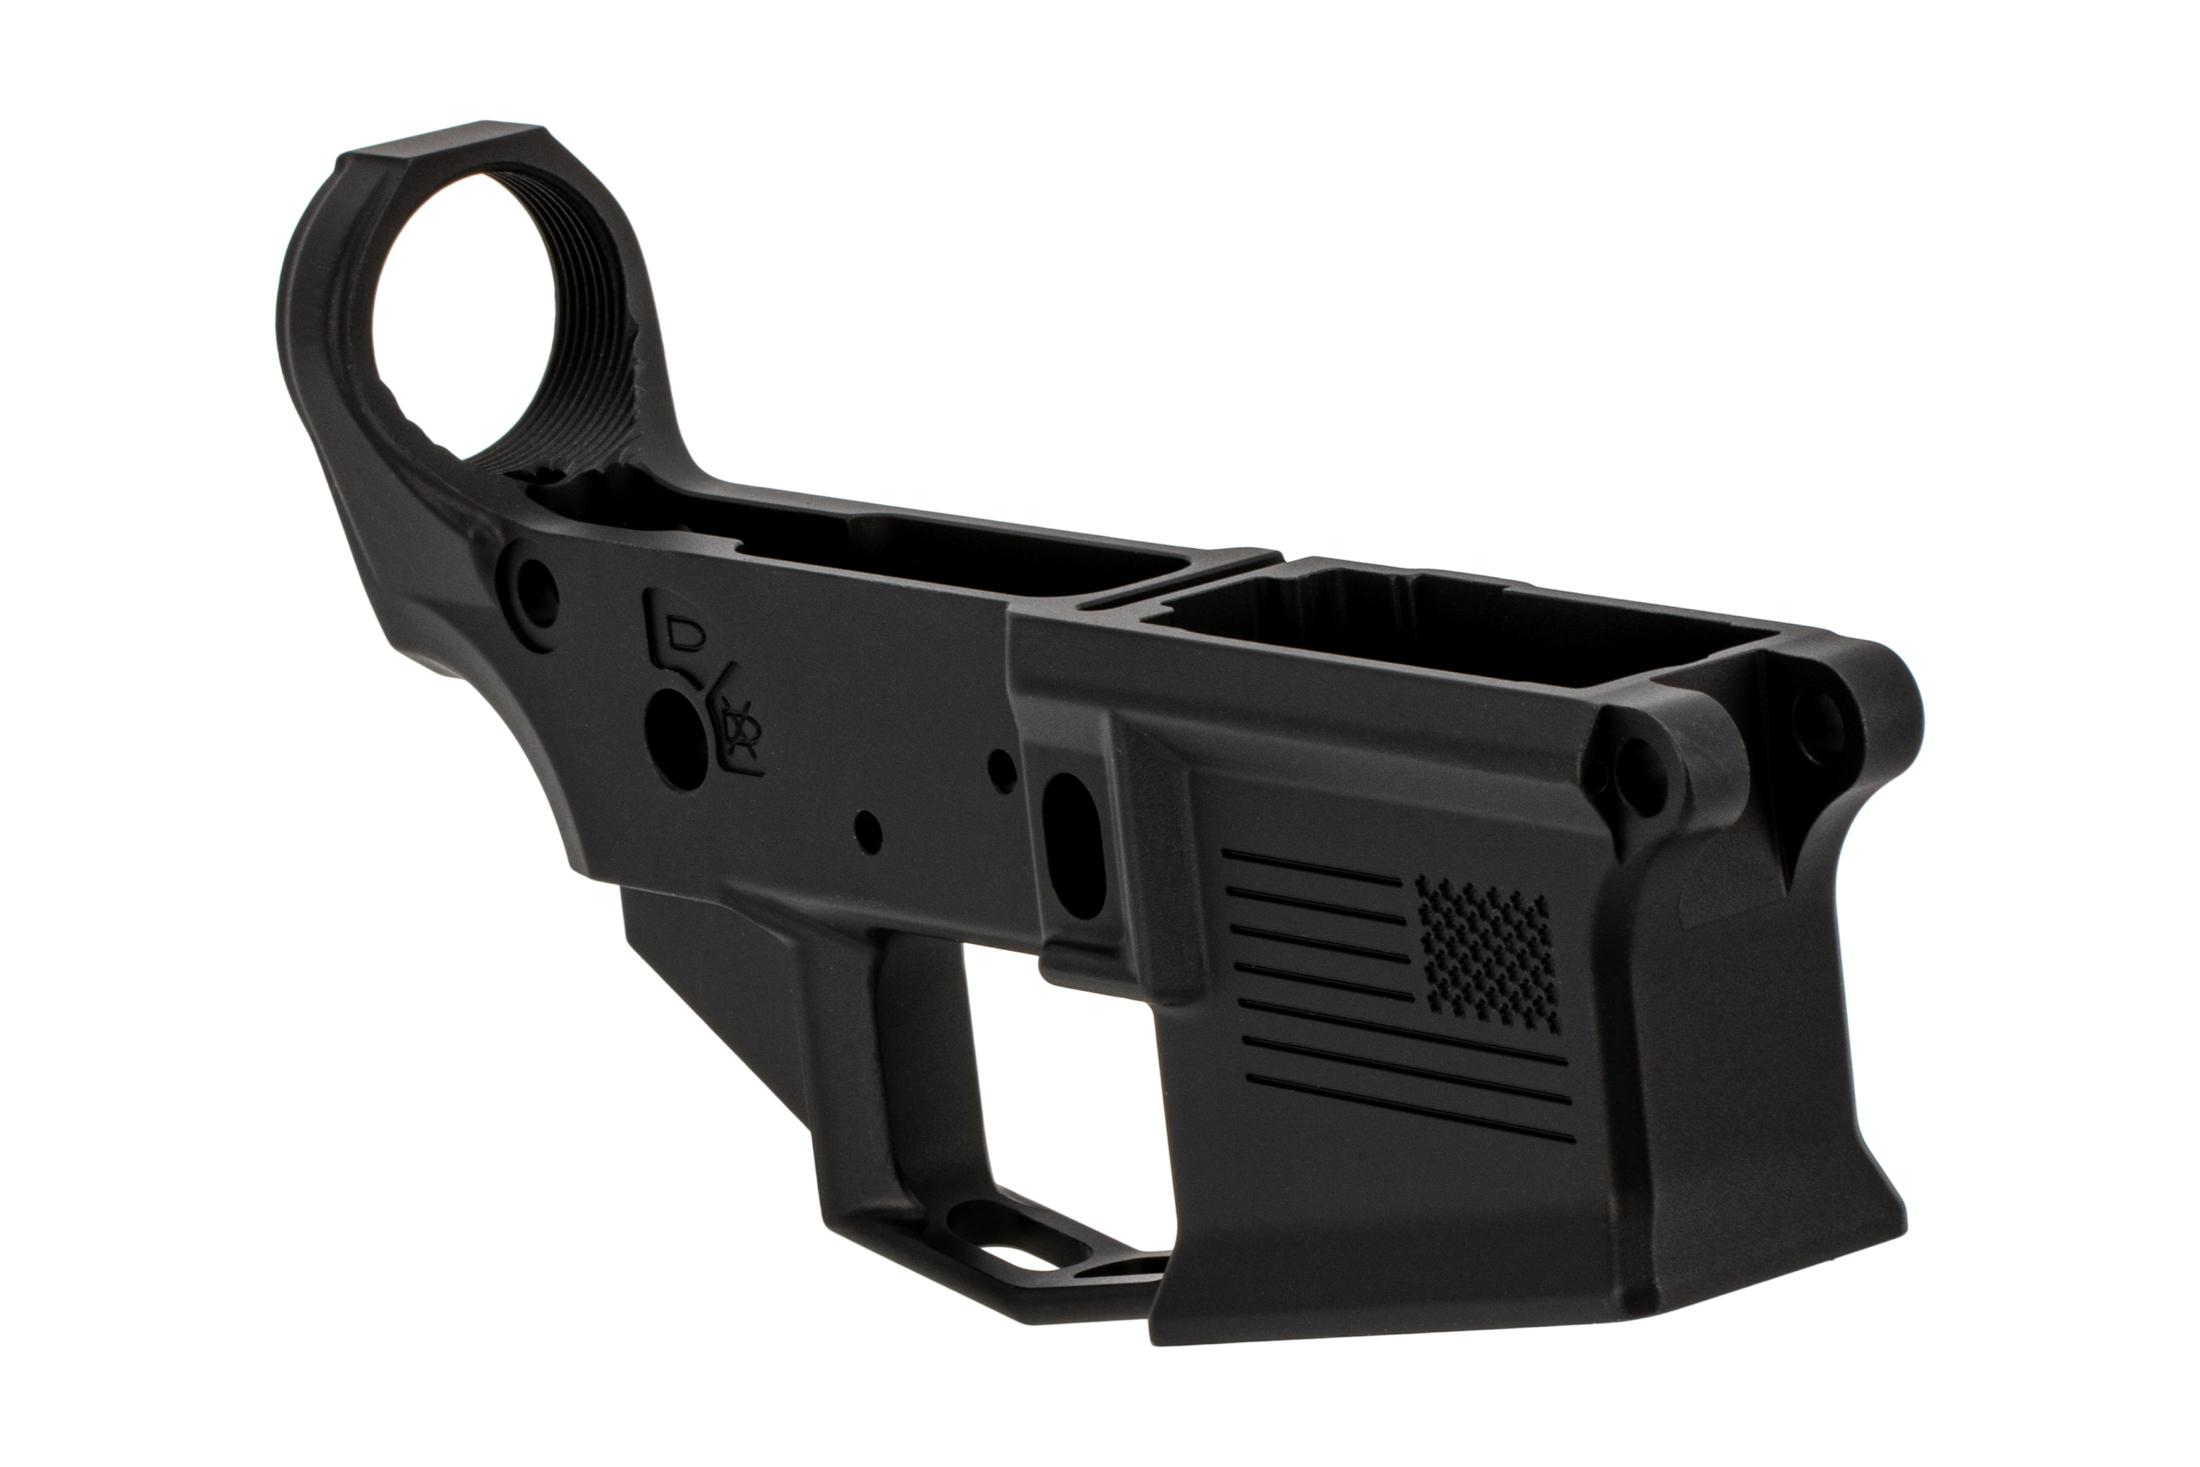 Aero Precision stripped M4E1 lower receiver multical with special edition freedom engraving and black finish